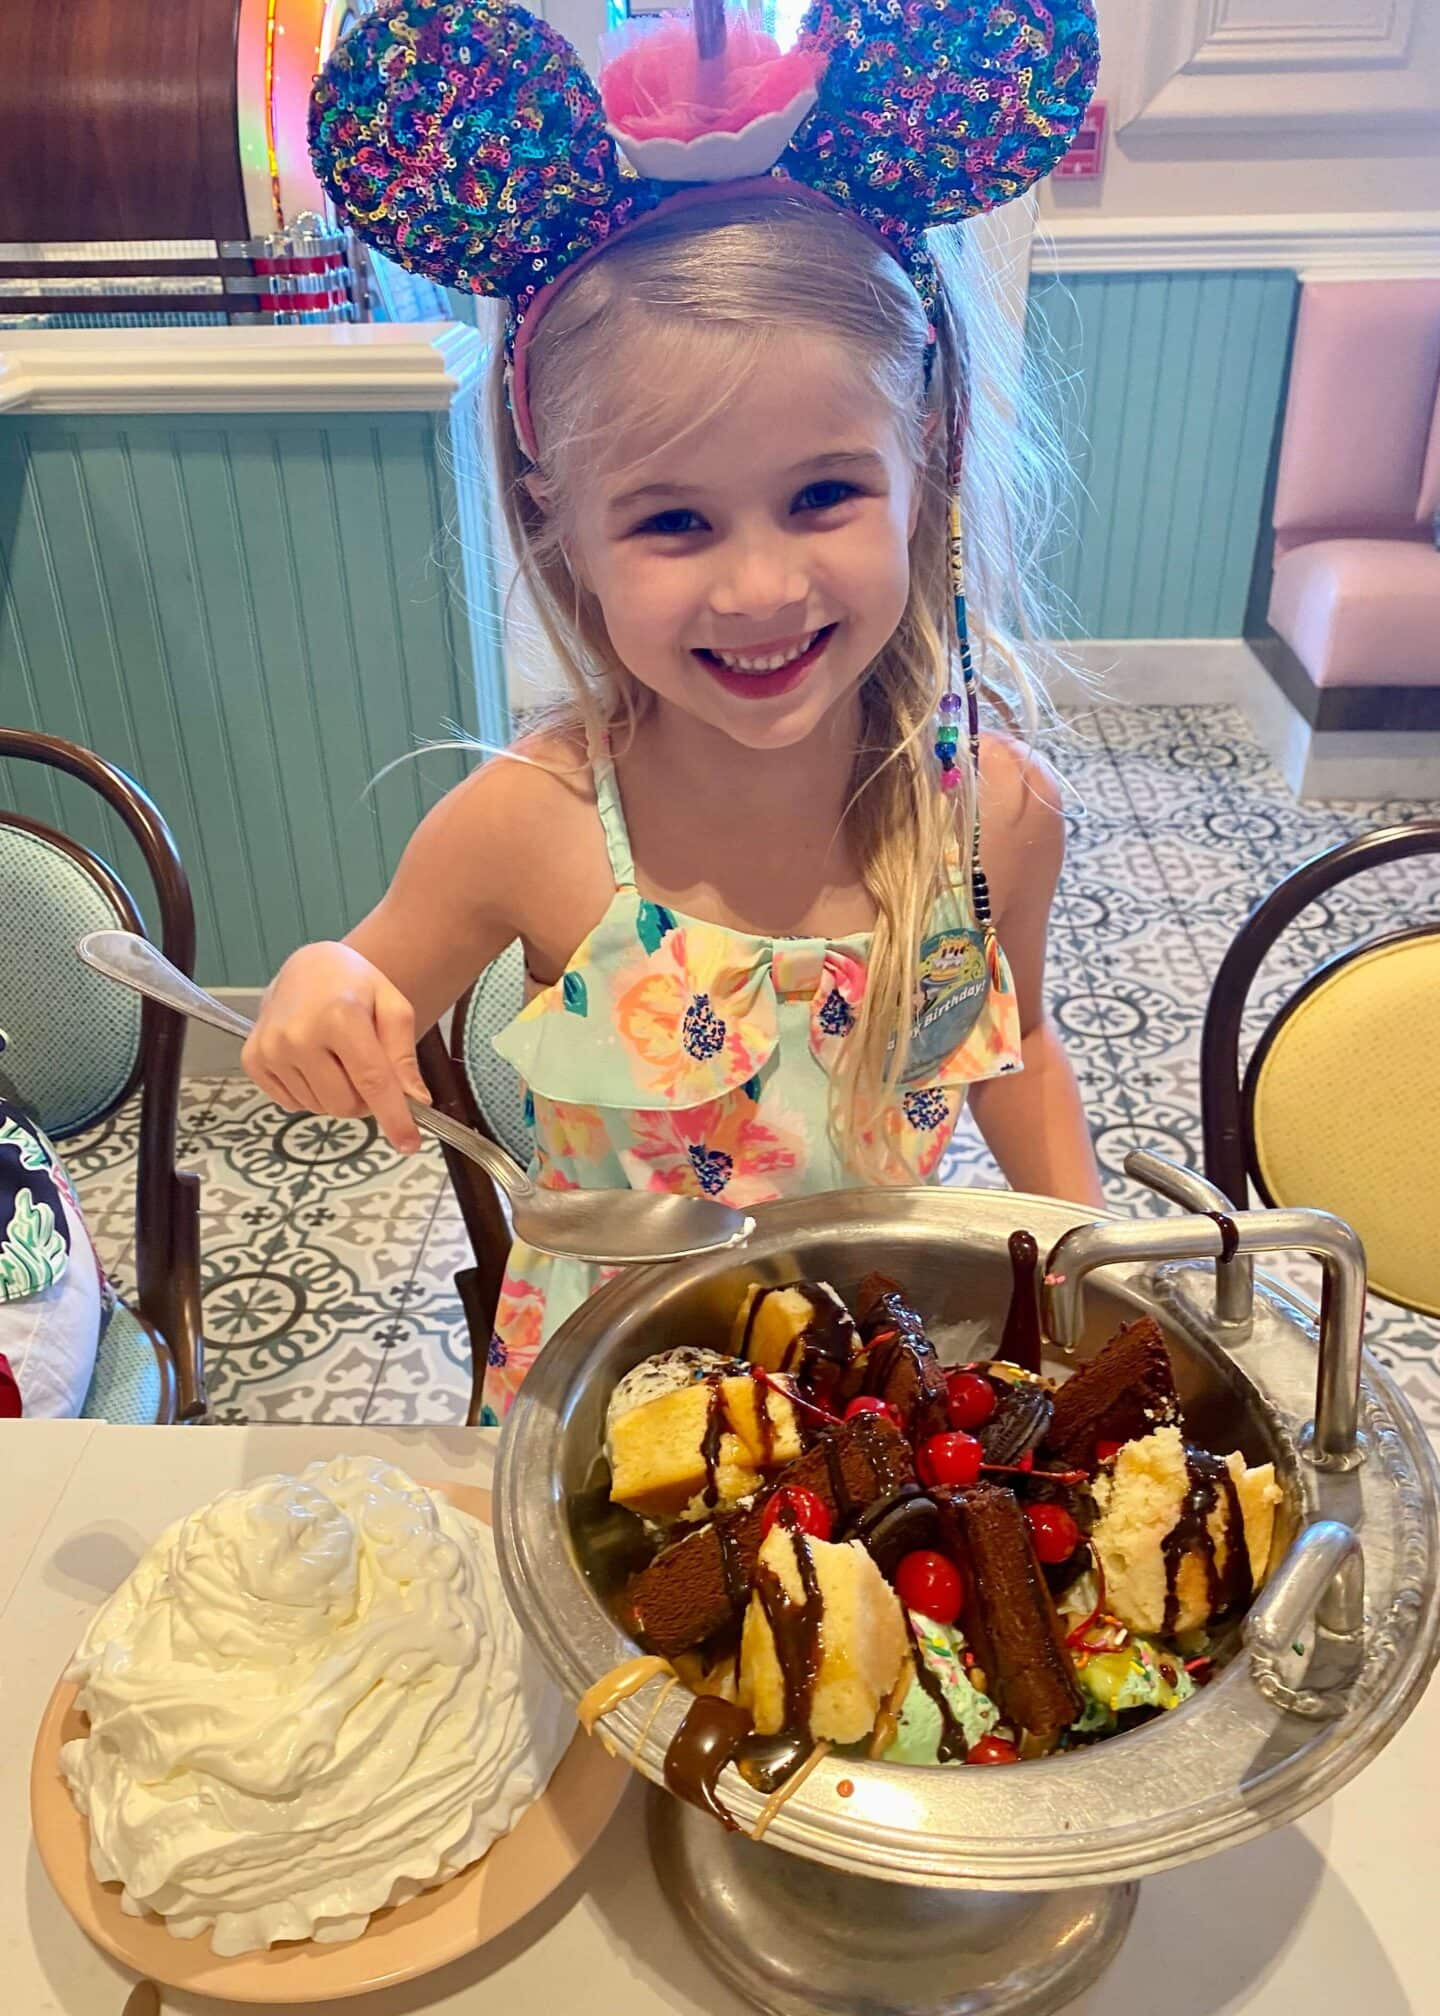 Tess's Birthday Dinner at Beaches and Cream